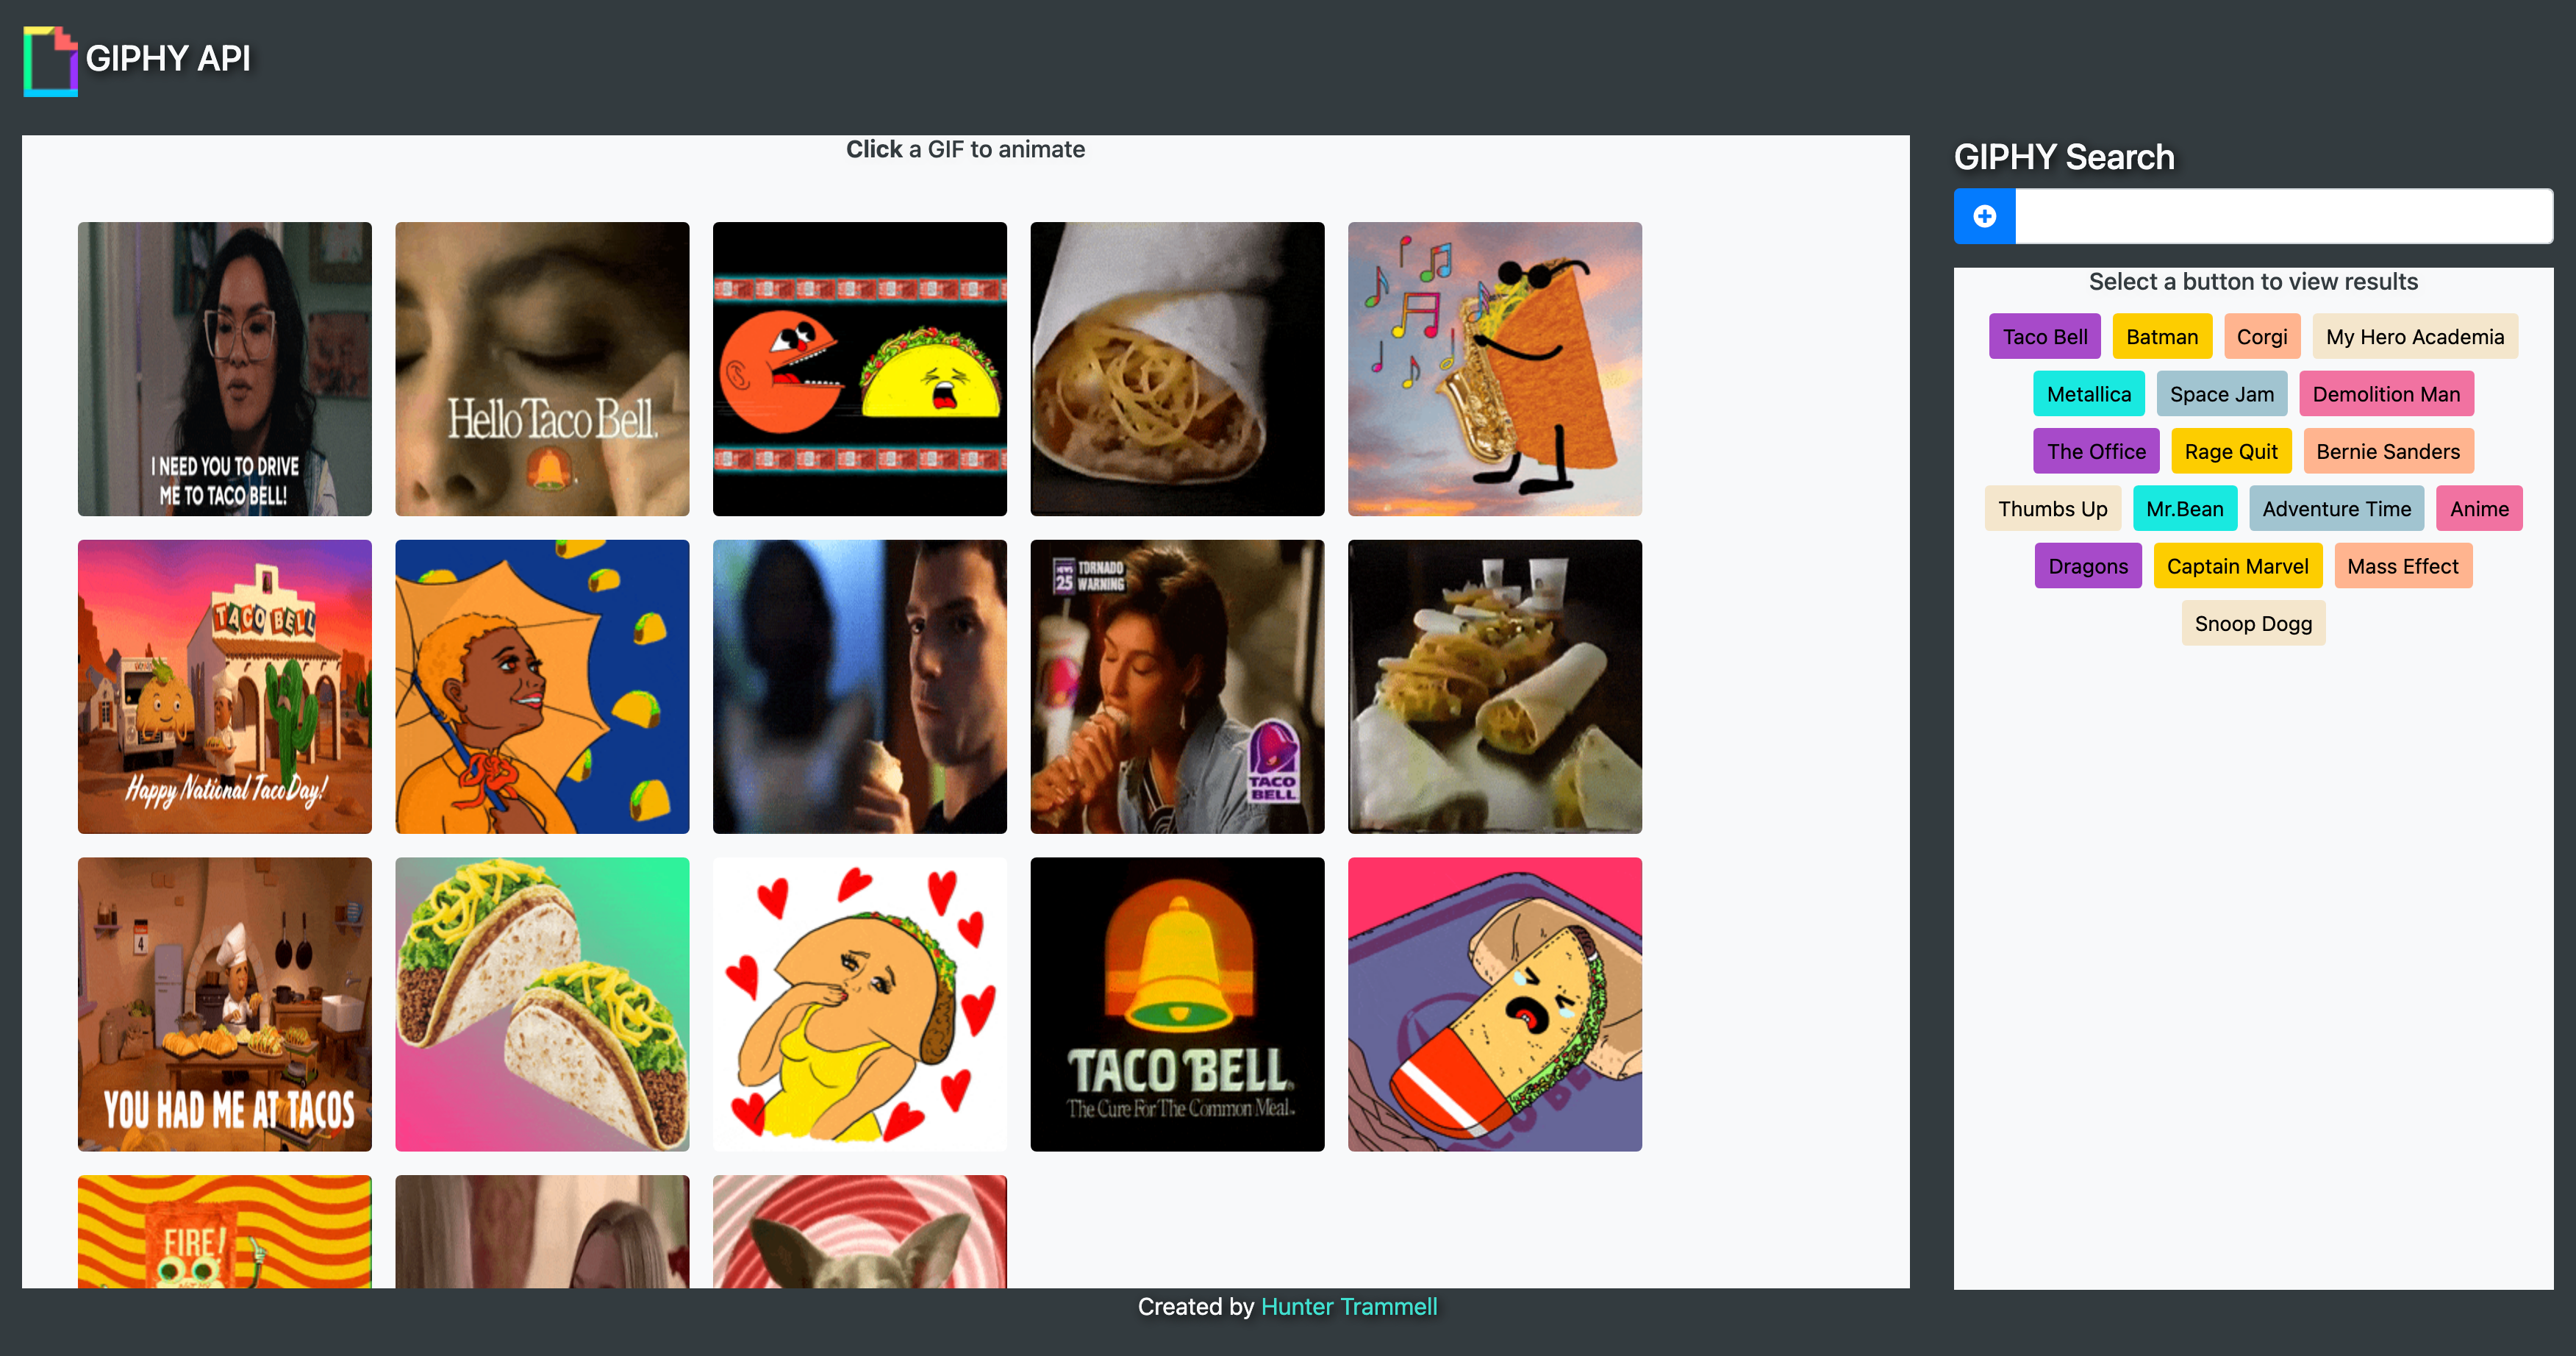 An app that pulls GIF's from the GIPHY API and displays them on a webpage